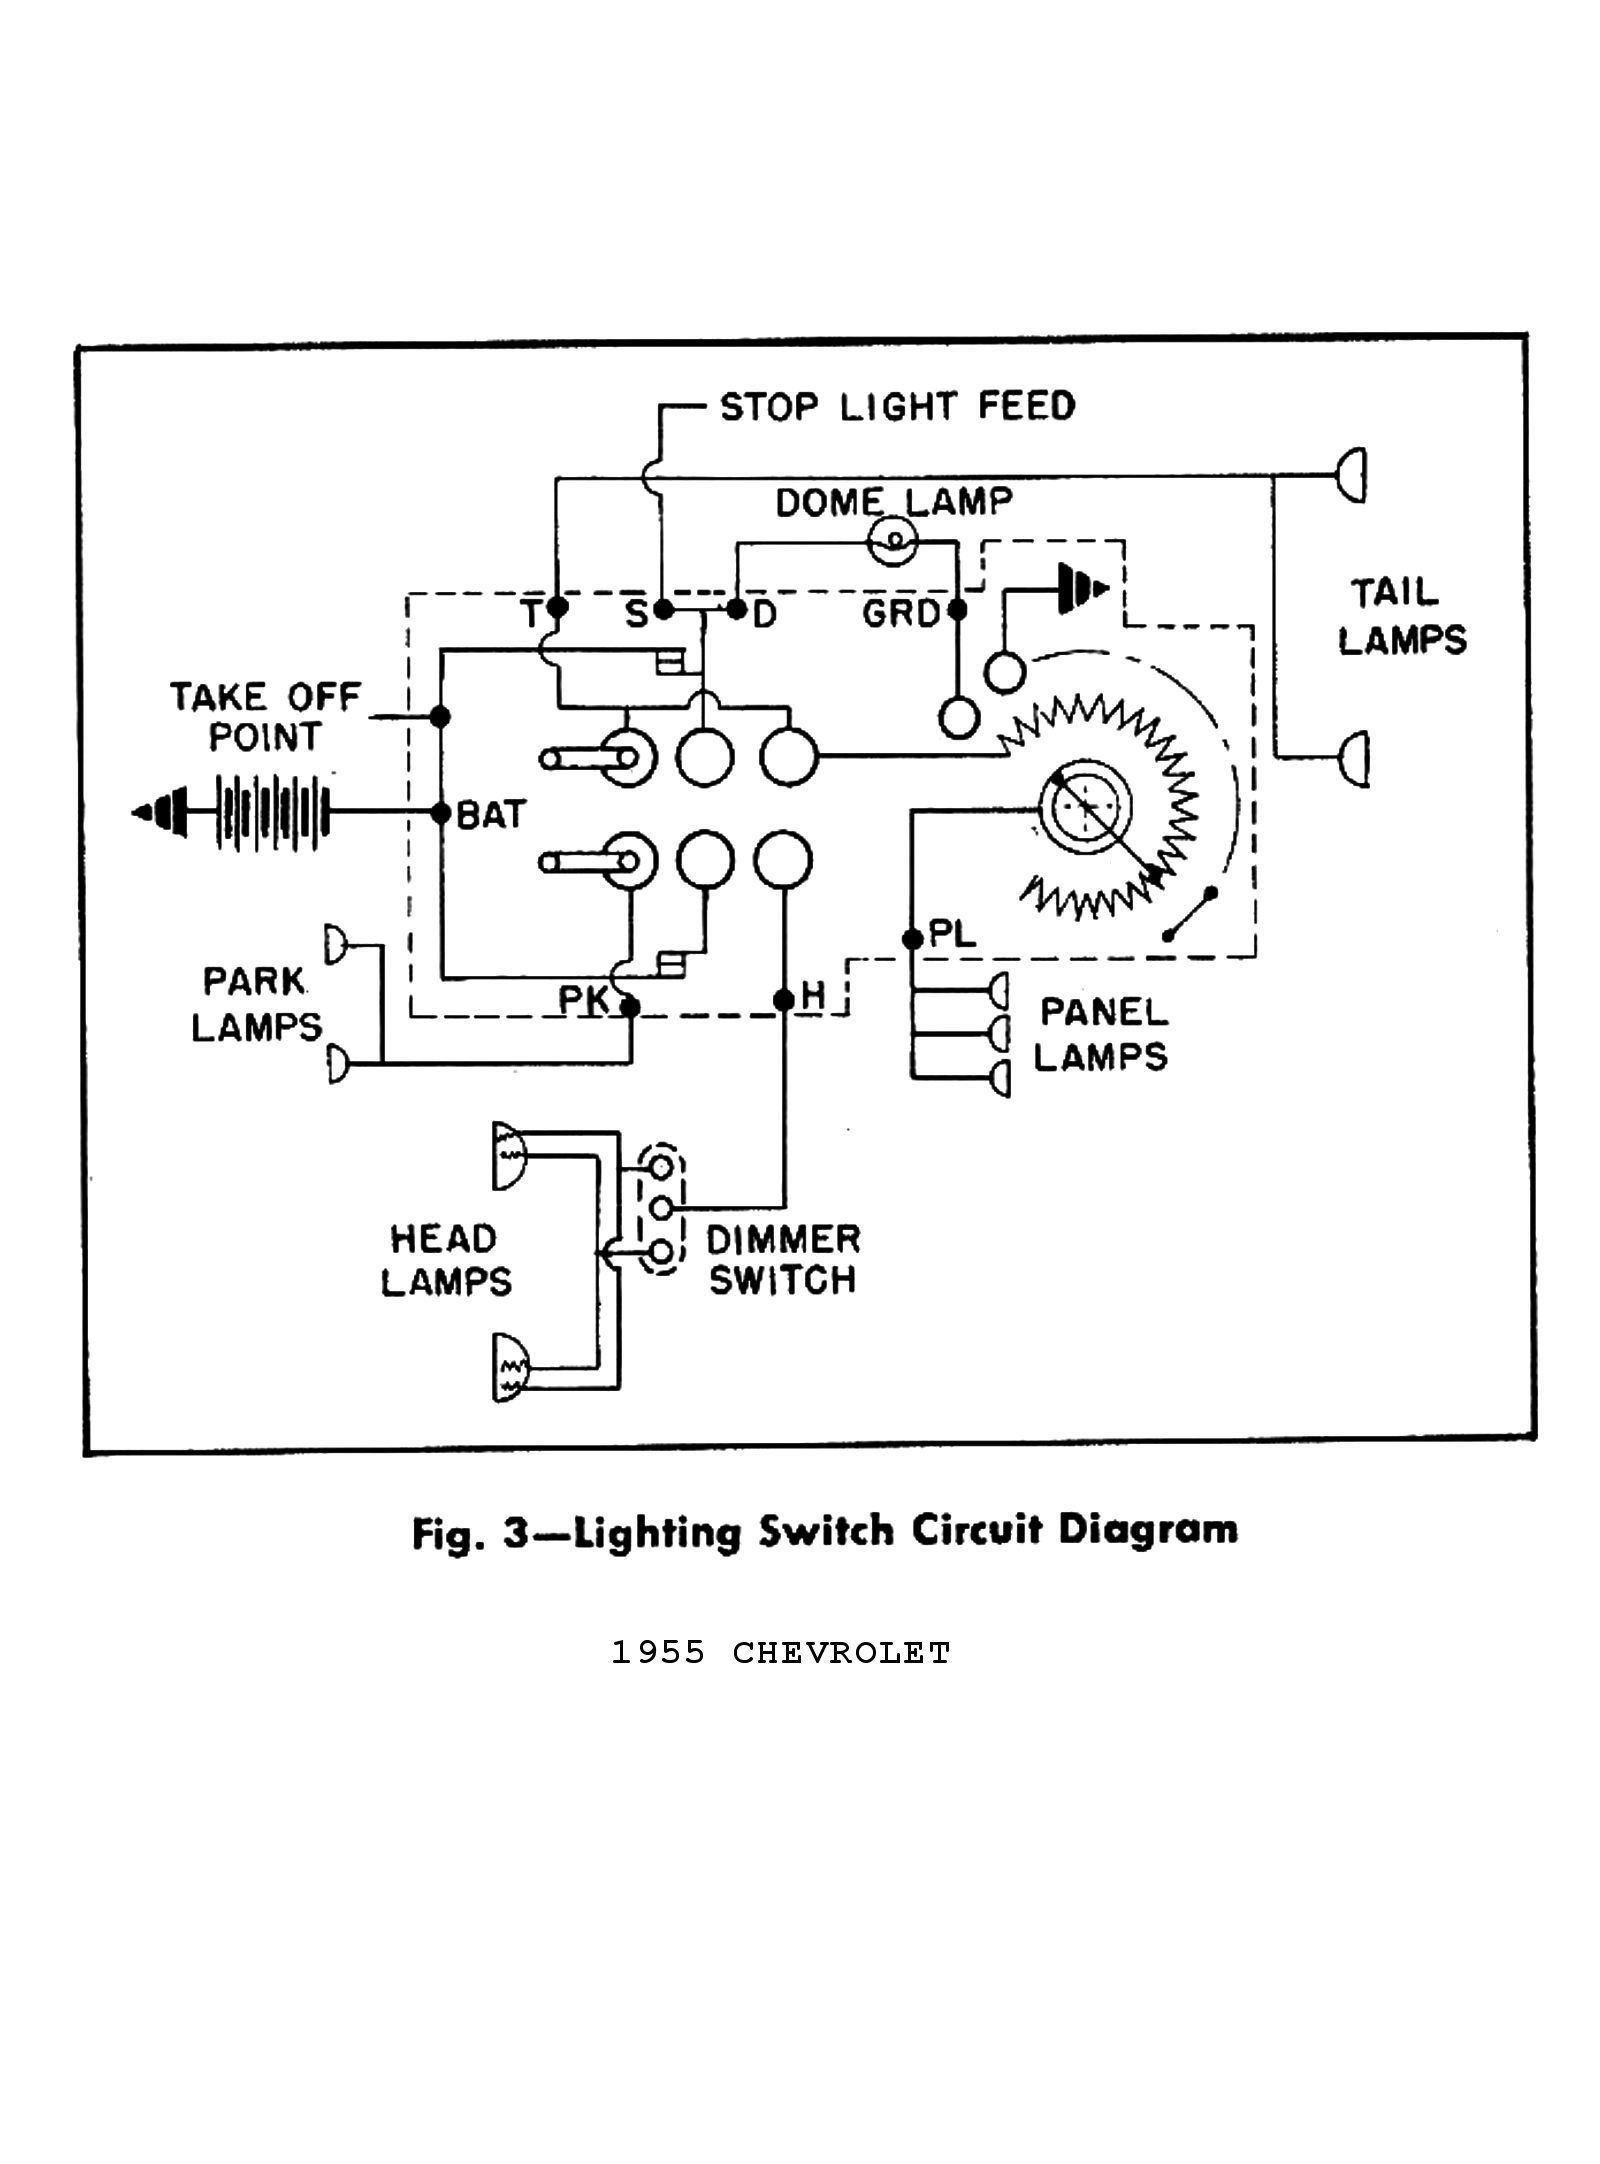 hight resolution of 66 chevy headlight switch wiring diagram wiring diagram view 63 chevy truck headlight switch wiring